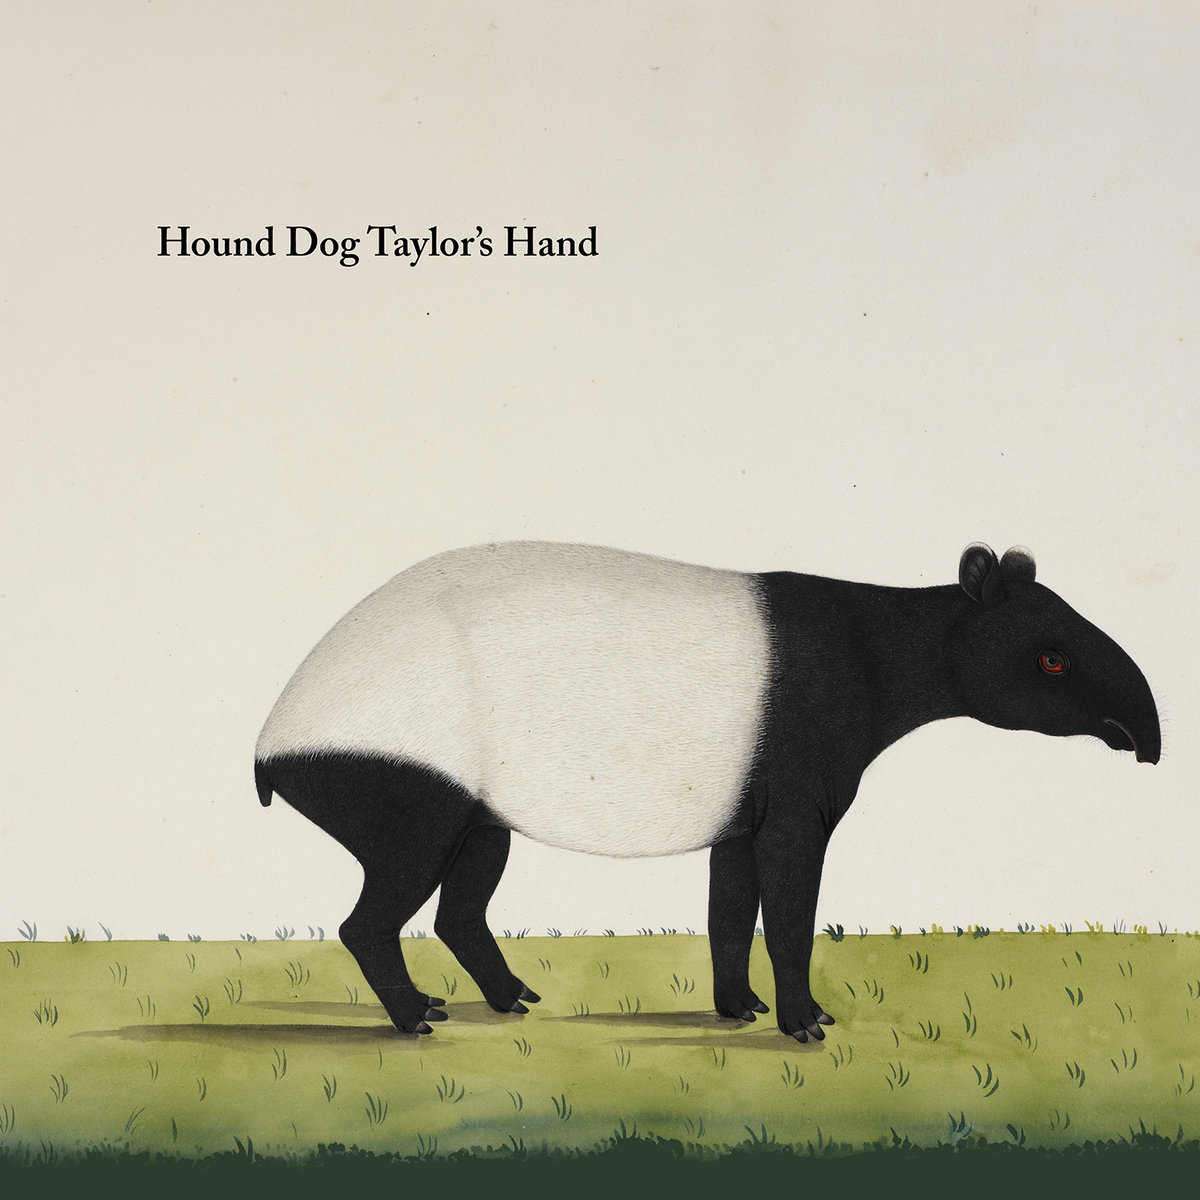 HOUND DOG TAYLOR'S HAND - Hound Dog Taylor's Hand (2019) cover